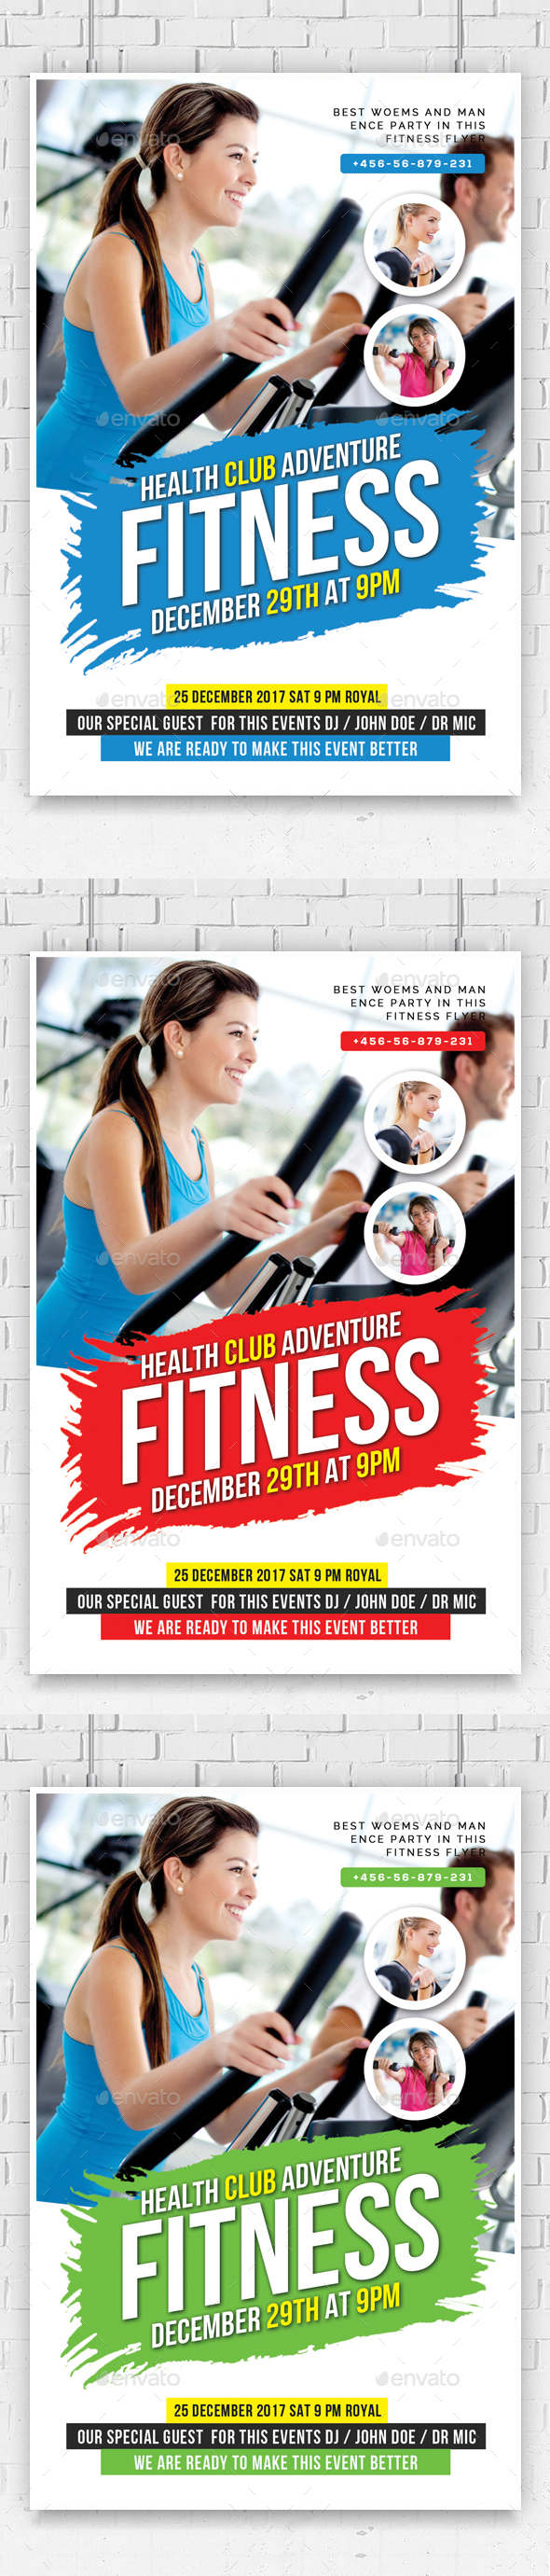 Fitness Health Flyers Template - Flyers Print Templates